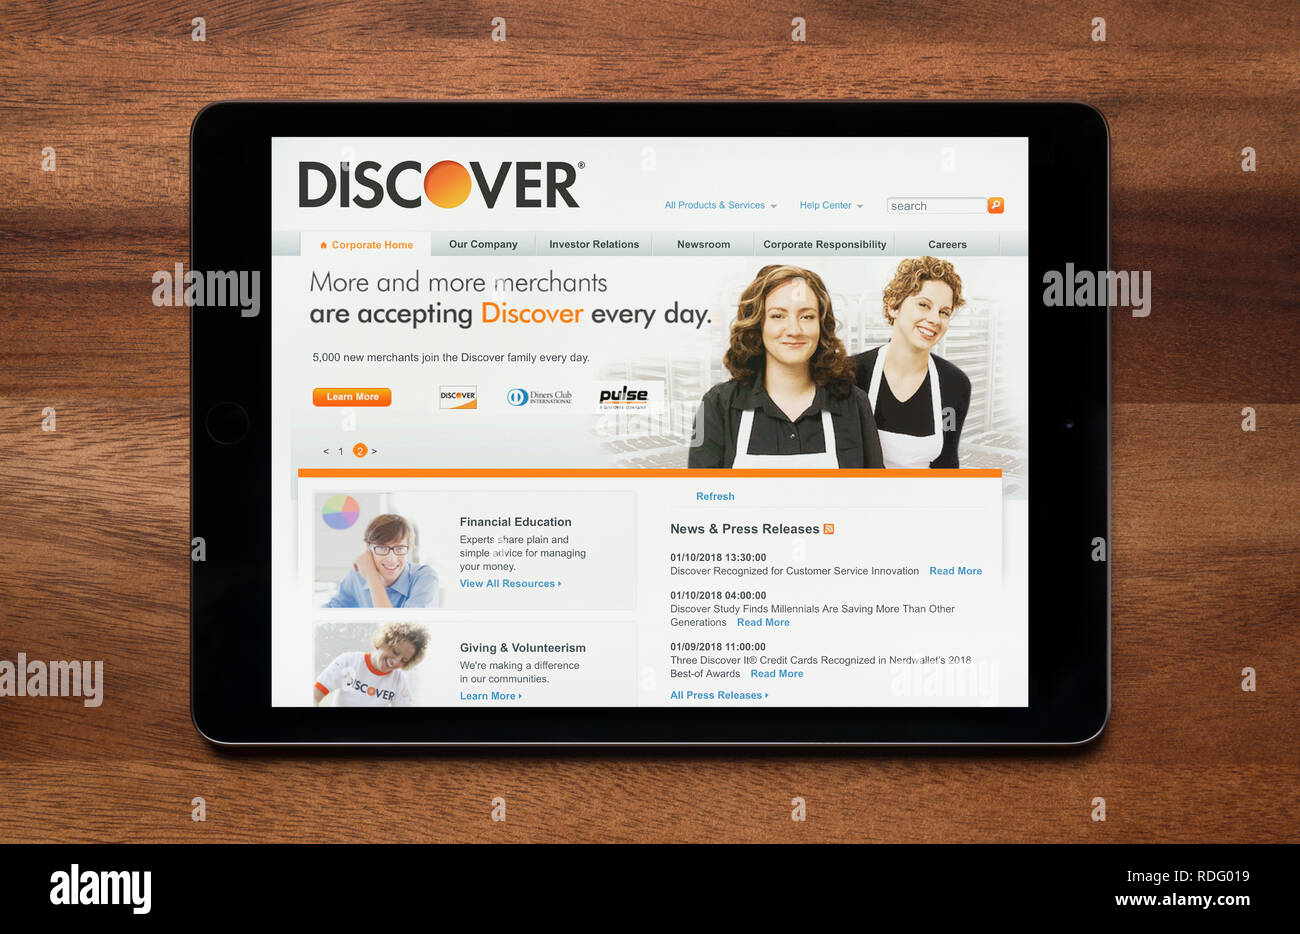 The website of Discover bank is seen on an iPad tablet, which is resting on a wooden table (Editorial use only). - Stock Image